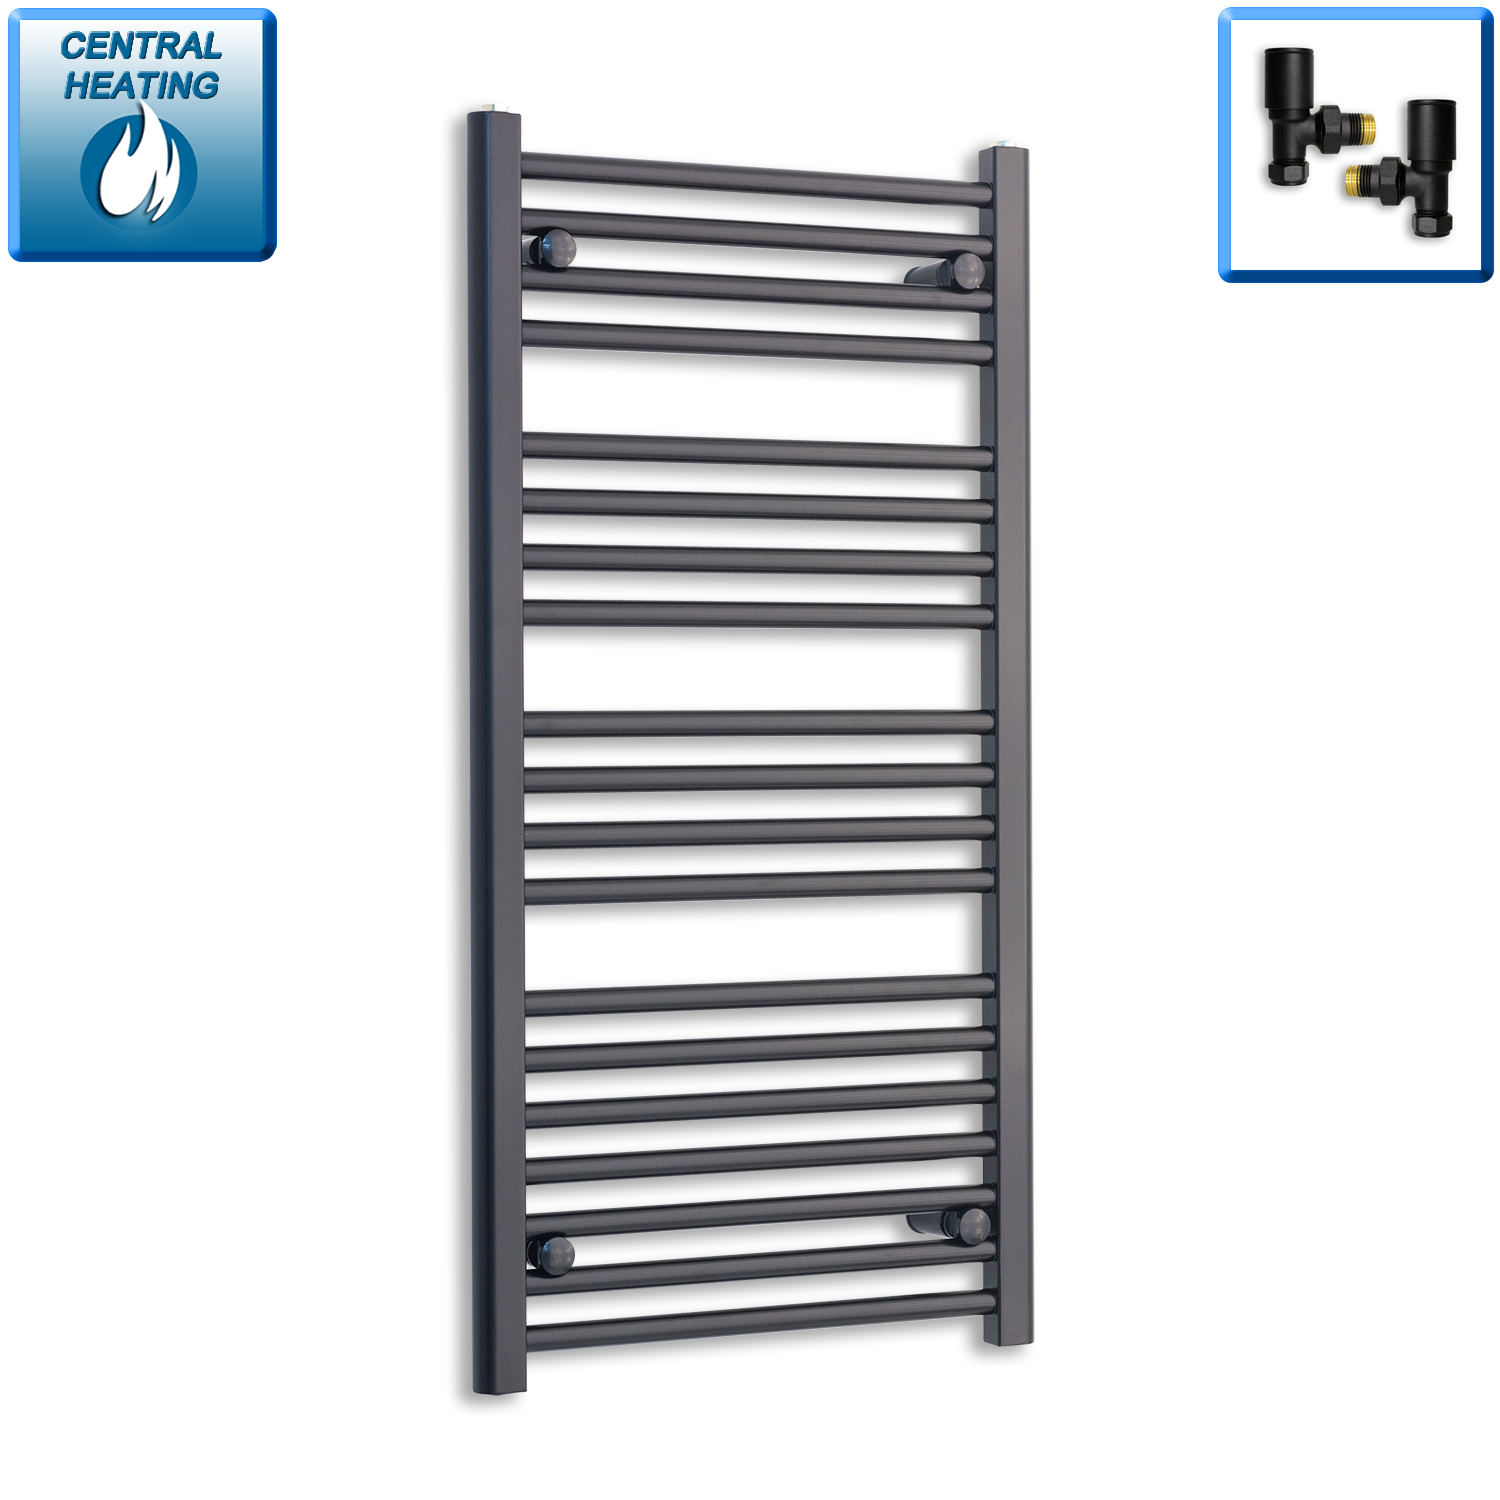 600mm Wide 800mm High Flat Black Heated Towel Rail Radiator HTR,With Straight Valve